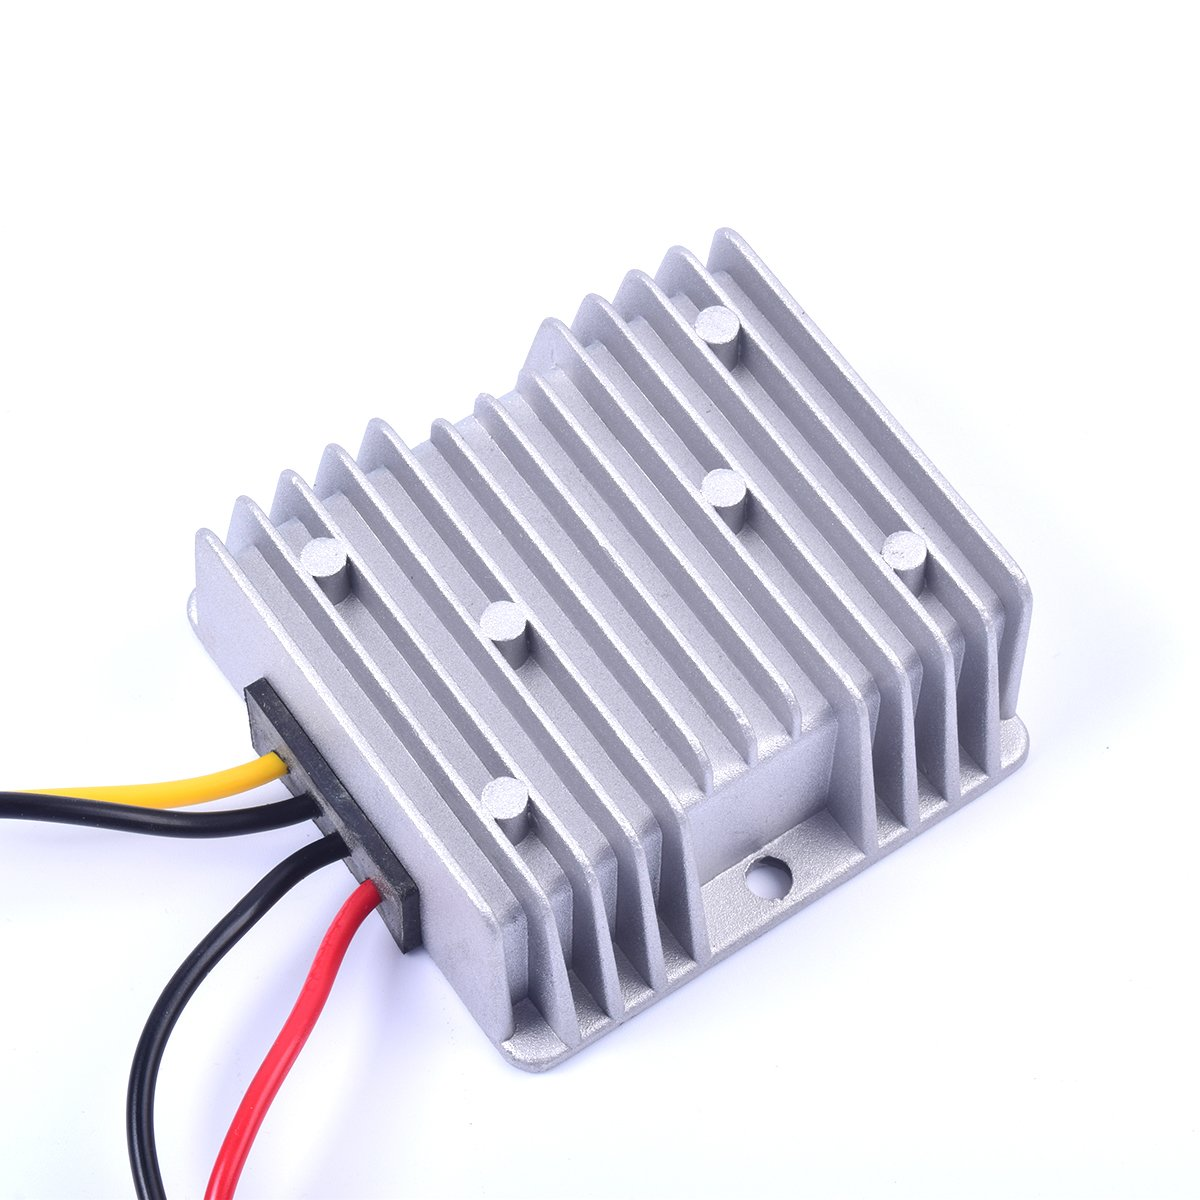 Car Dc 12v 4a Voltage Stabilizer Surge Protector Power Led Voltmeter 5012 Psu Batt Chargers Electronic Components Supply Regulator For Auto Truck Vehicle Boat Solar System Etc